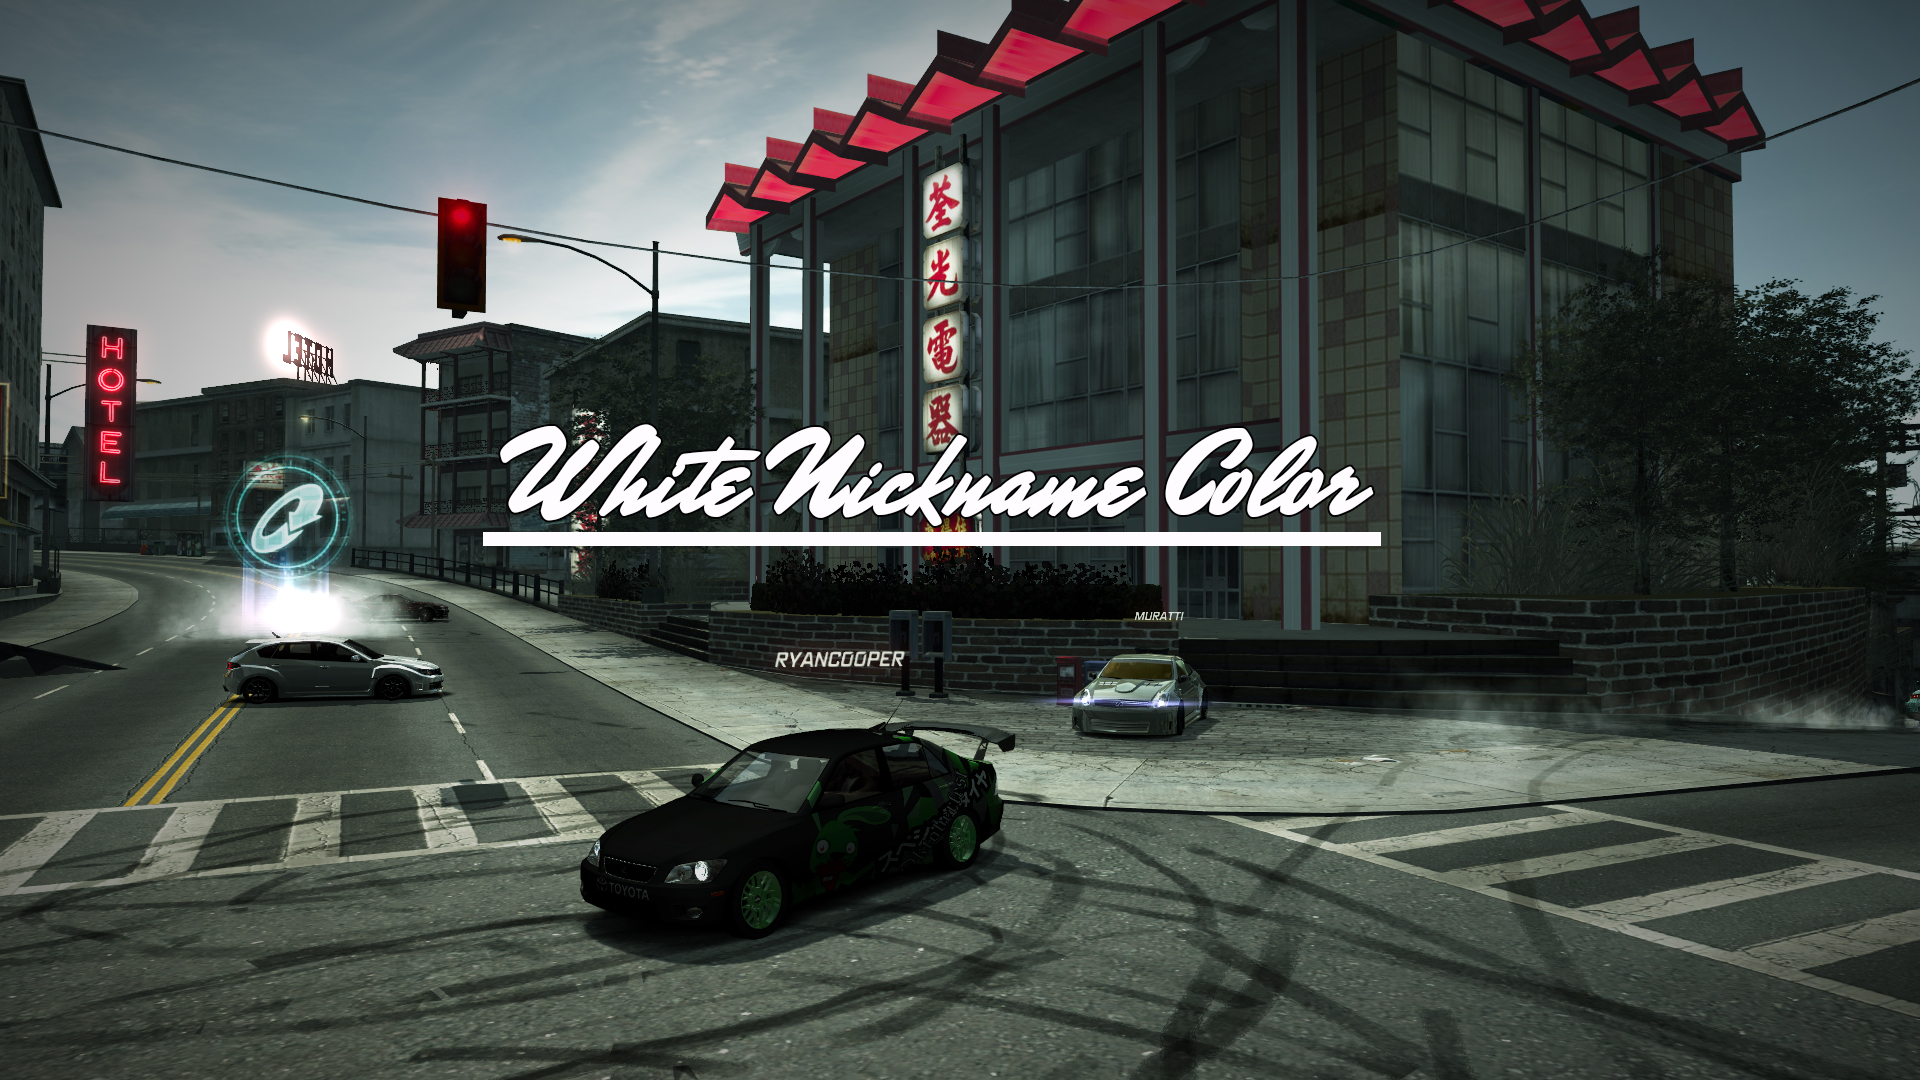 NFSMods - NFS World: White Colored Nicknames